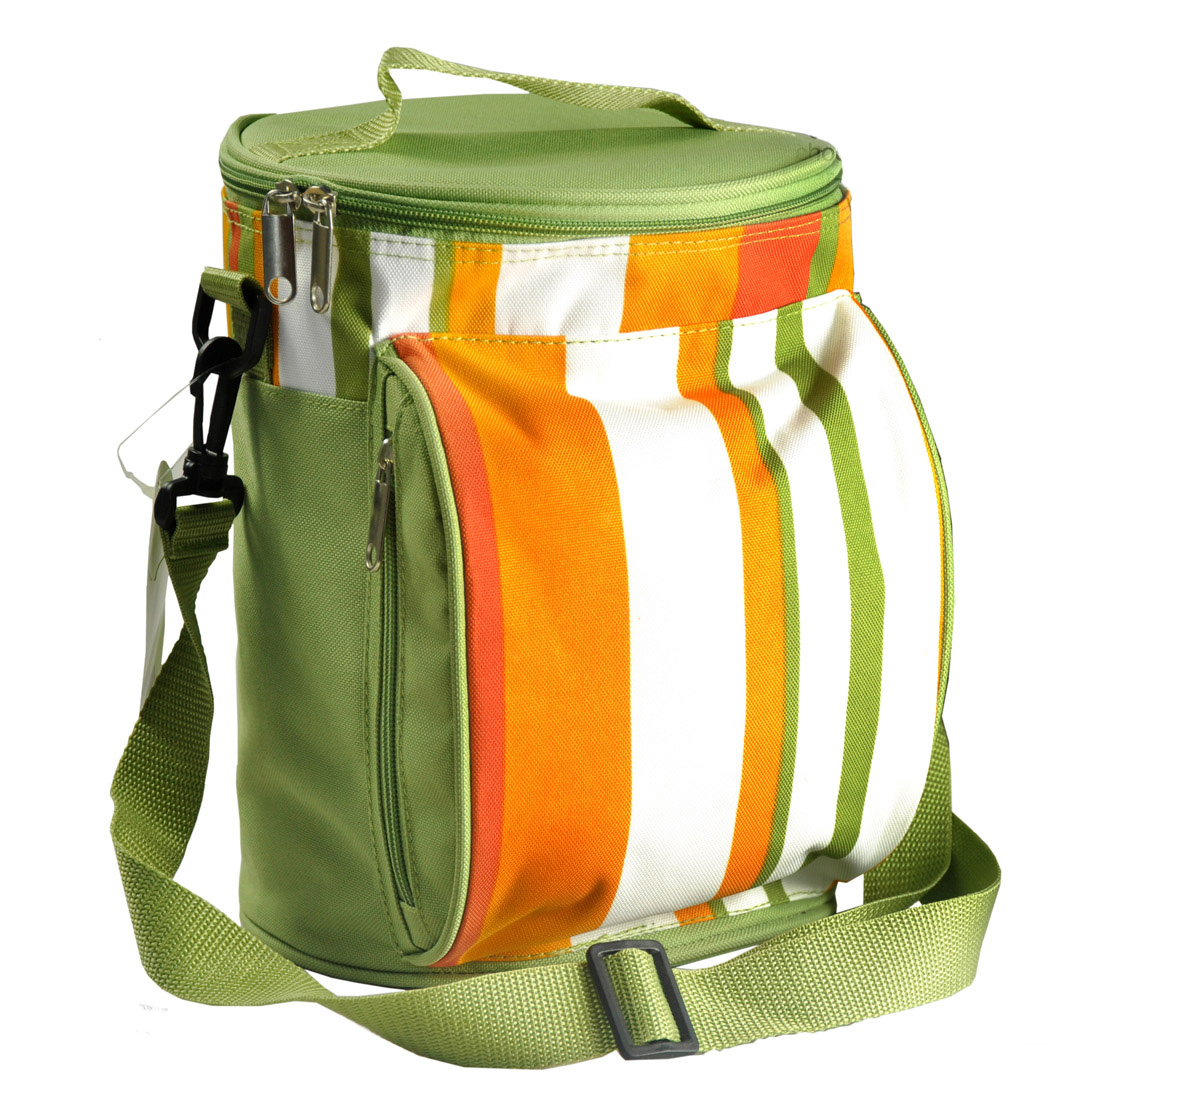 New Arrive HOT ! Free shipping cooler bag for outdoor ,ice bag,sales promotion lunch cooler bag picnic bag(China (Mainland))